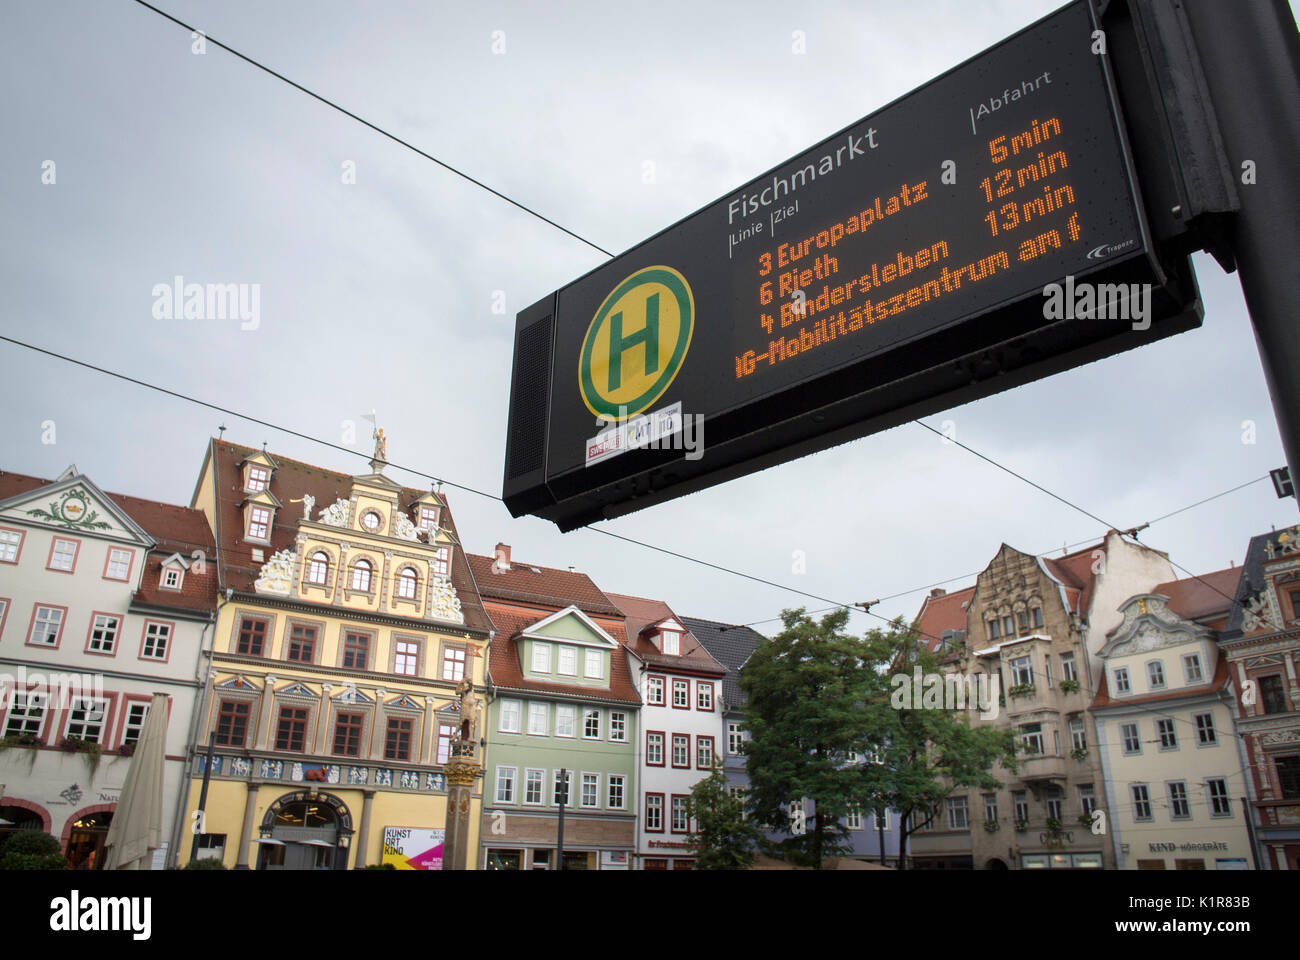 Bus Erfurt Bus Stop Waiting Times Stock Photos Bus Stop Waiting Times Stock